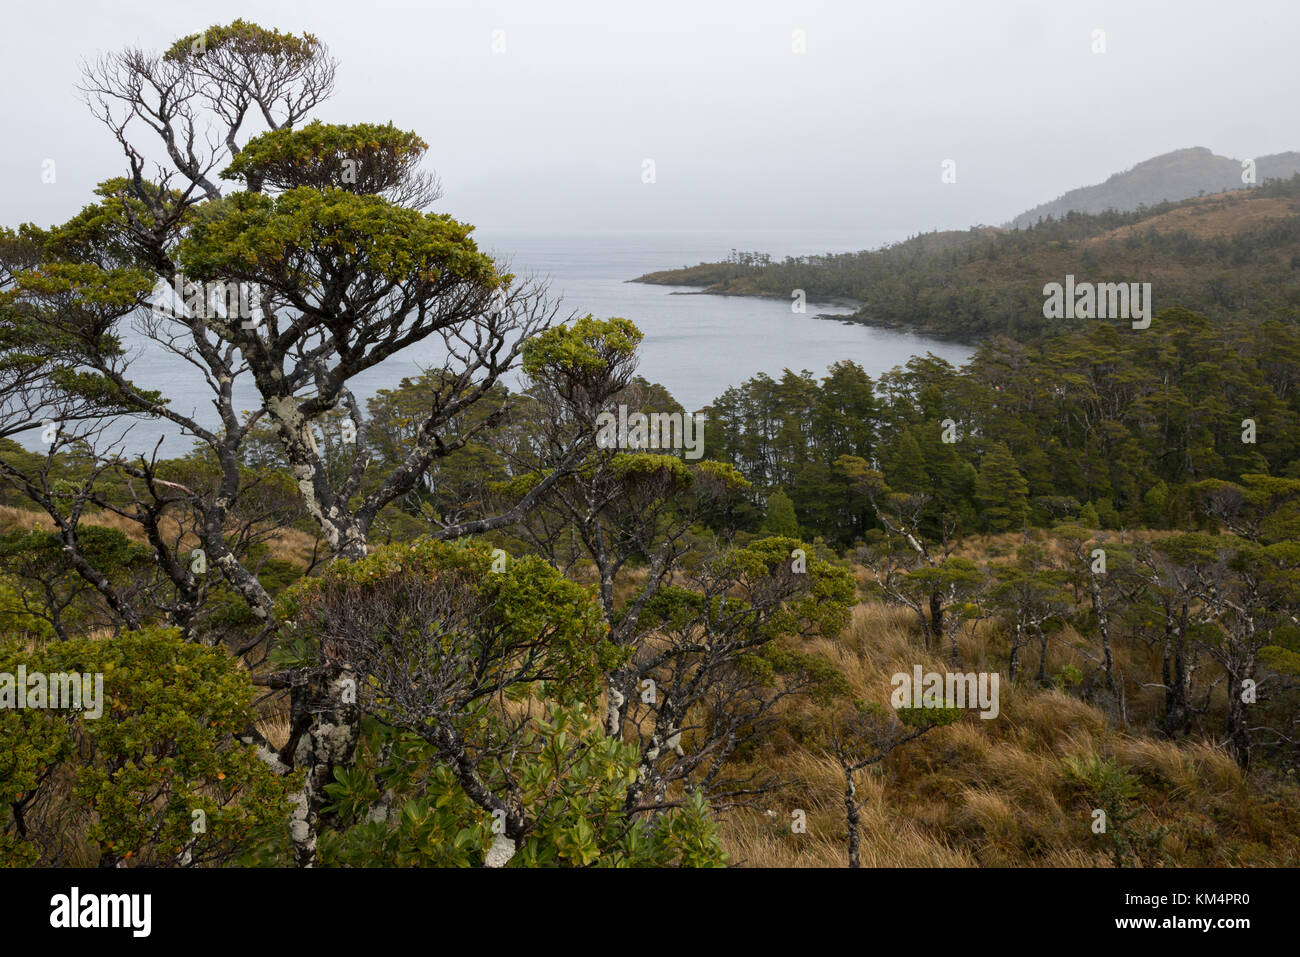 Vegetation at Carlos III Island, in the Straits of Magellan - Stock Image